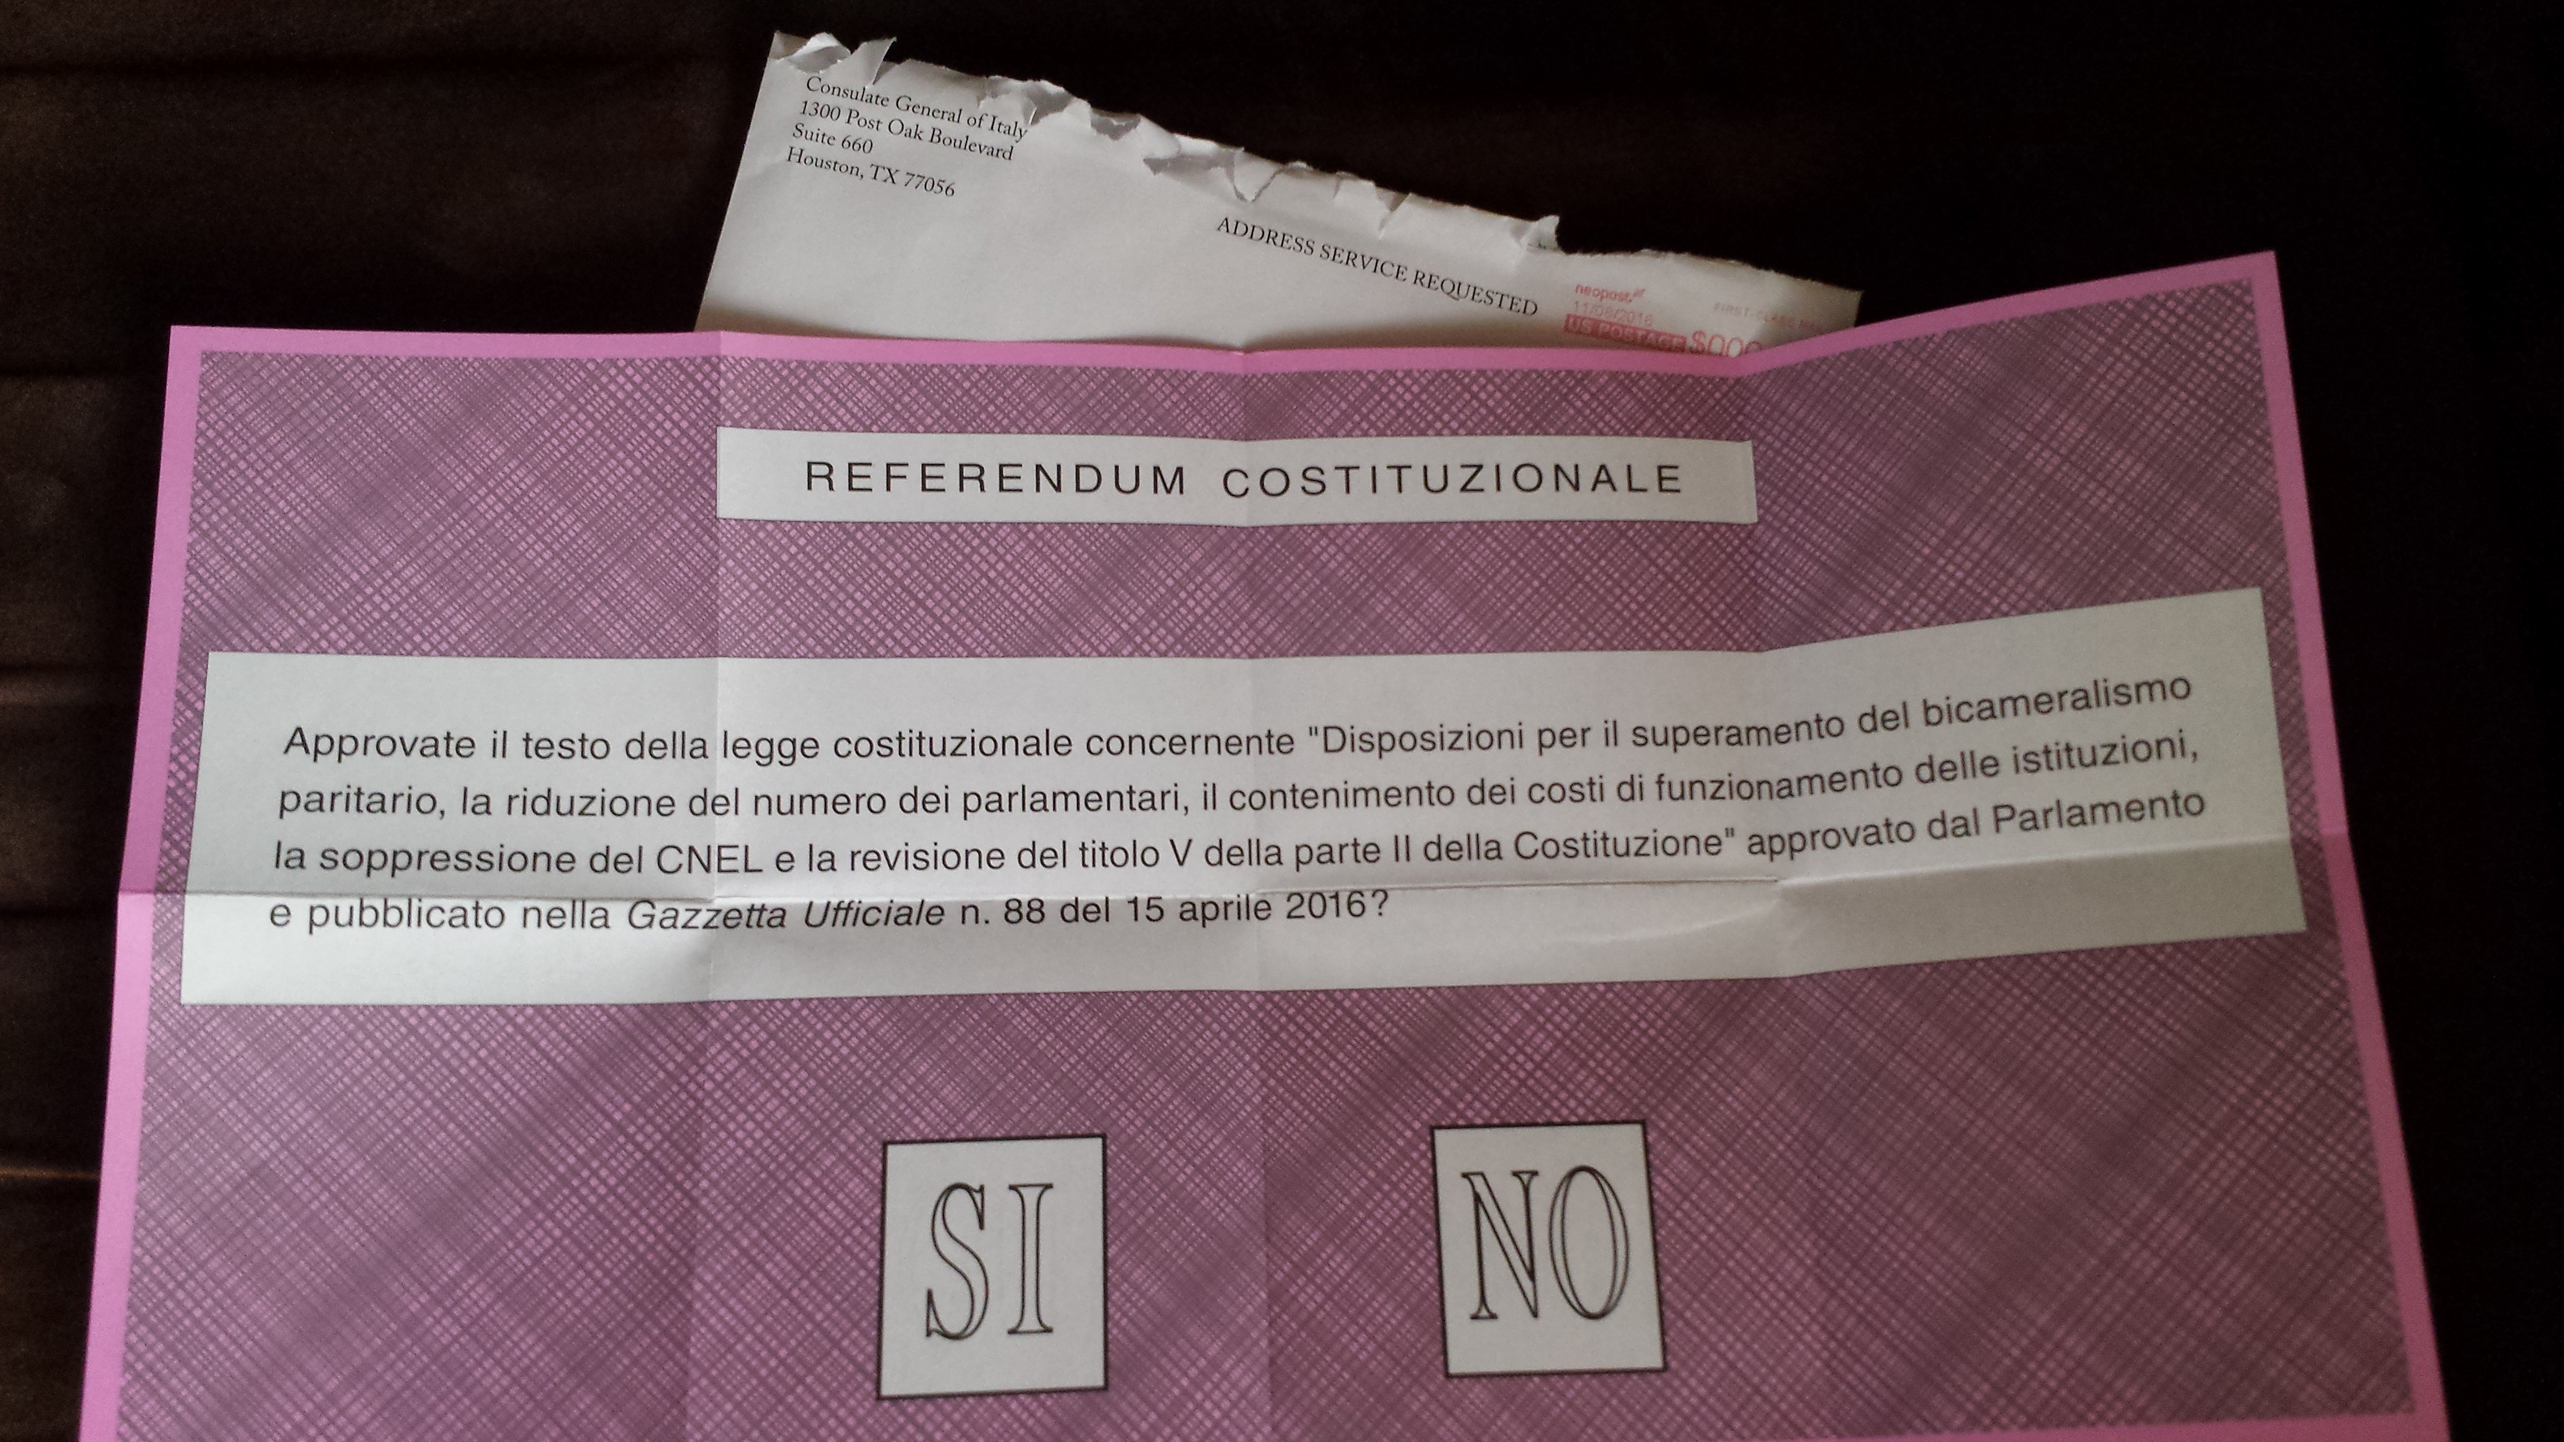 My ballot for the Italian Constitutional Referendum, before I marked it and sent it in.